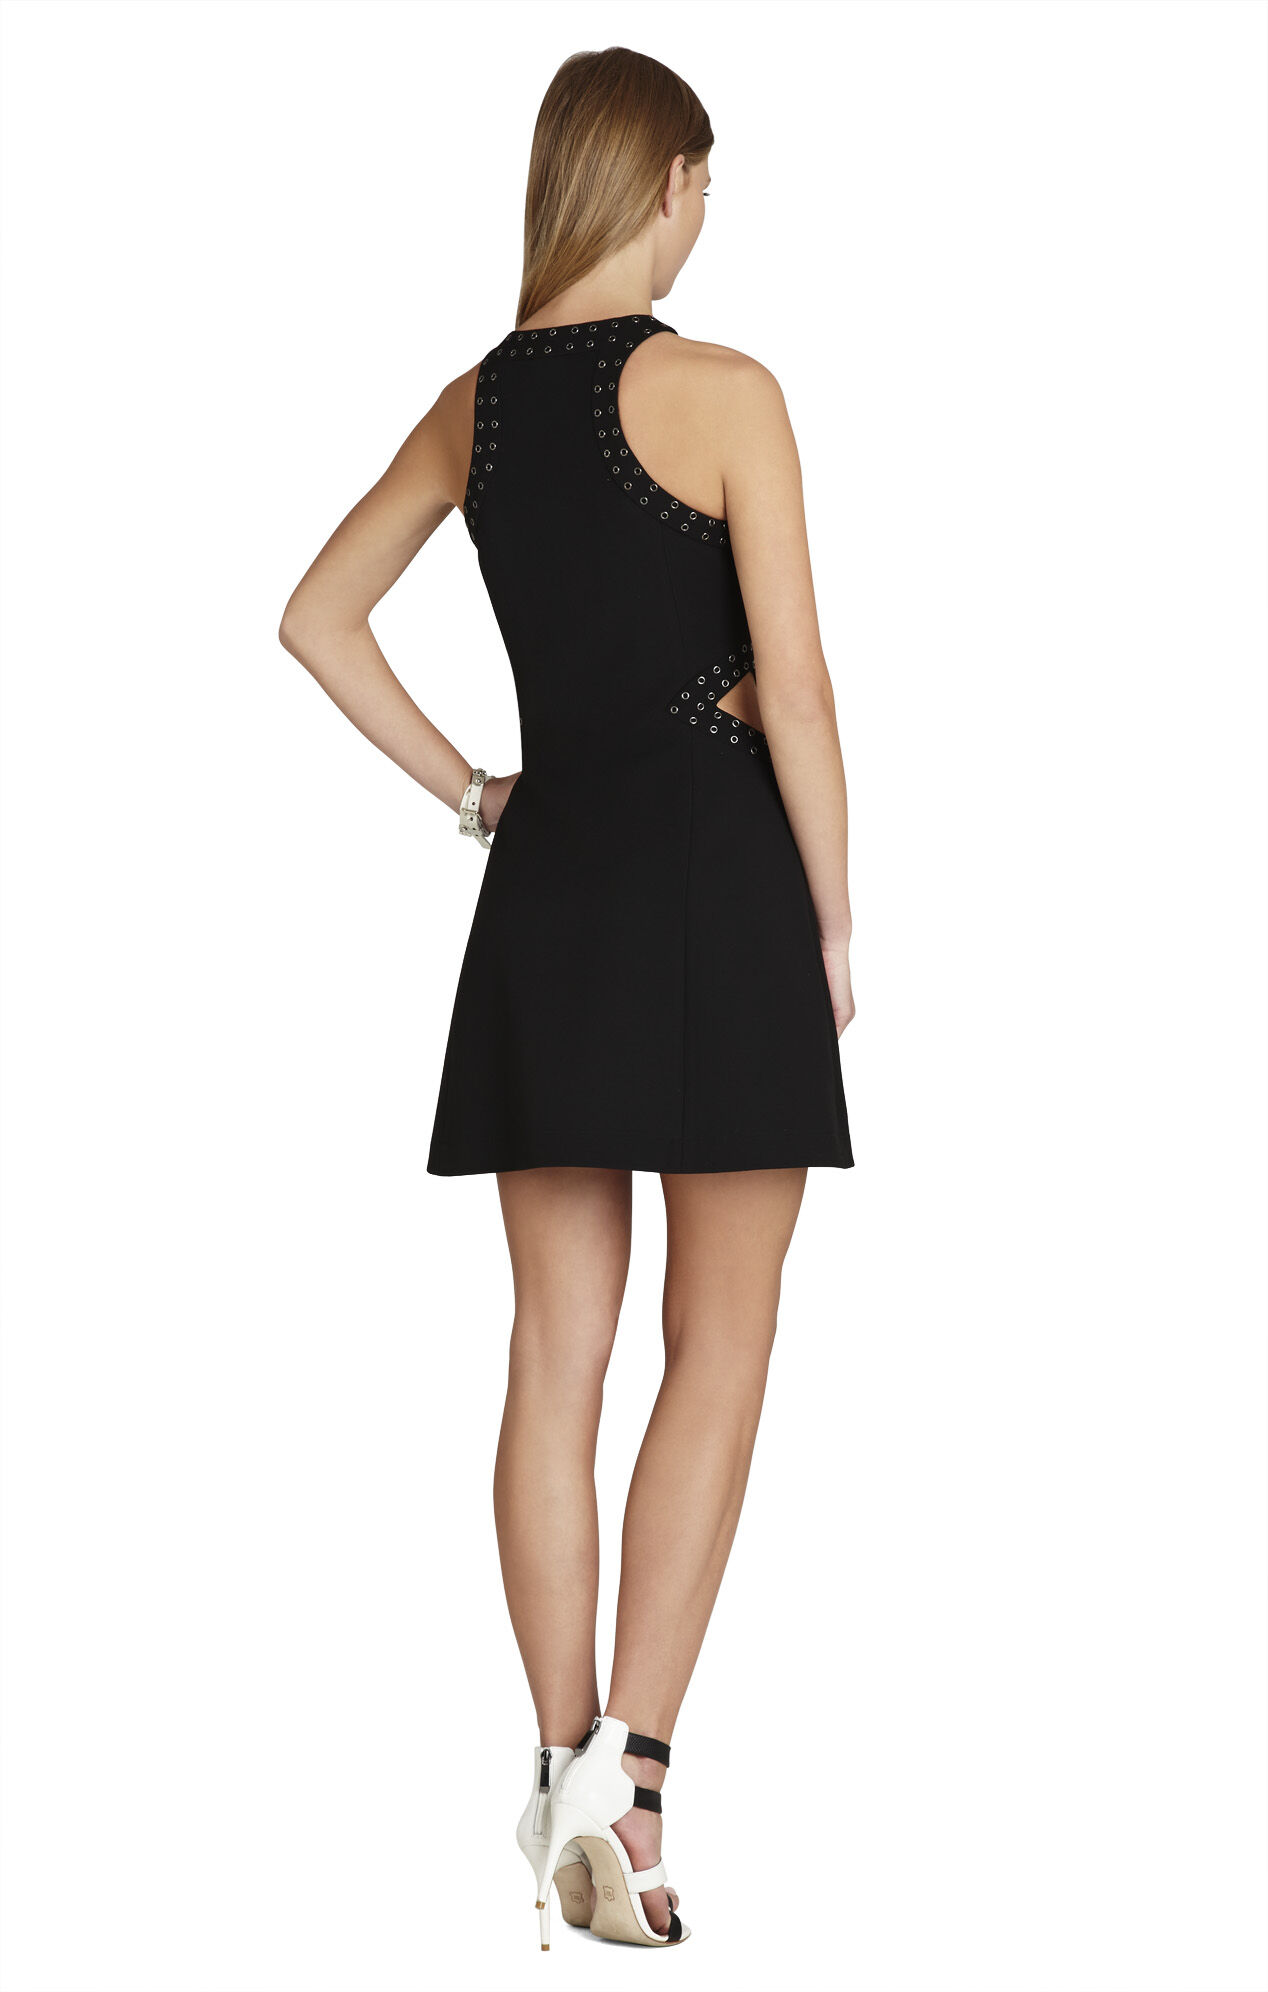 Jenn Sleeveless Cutout Dress